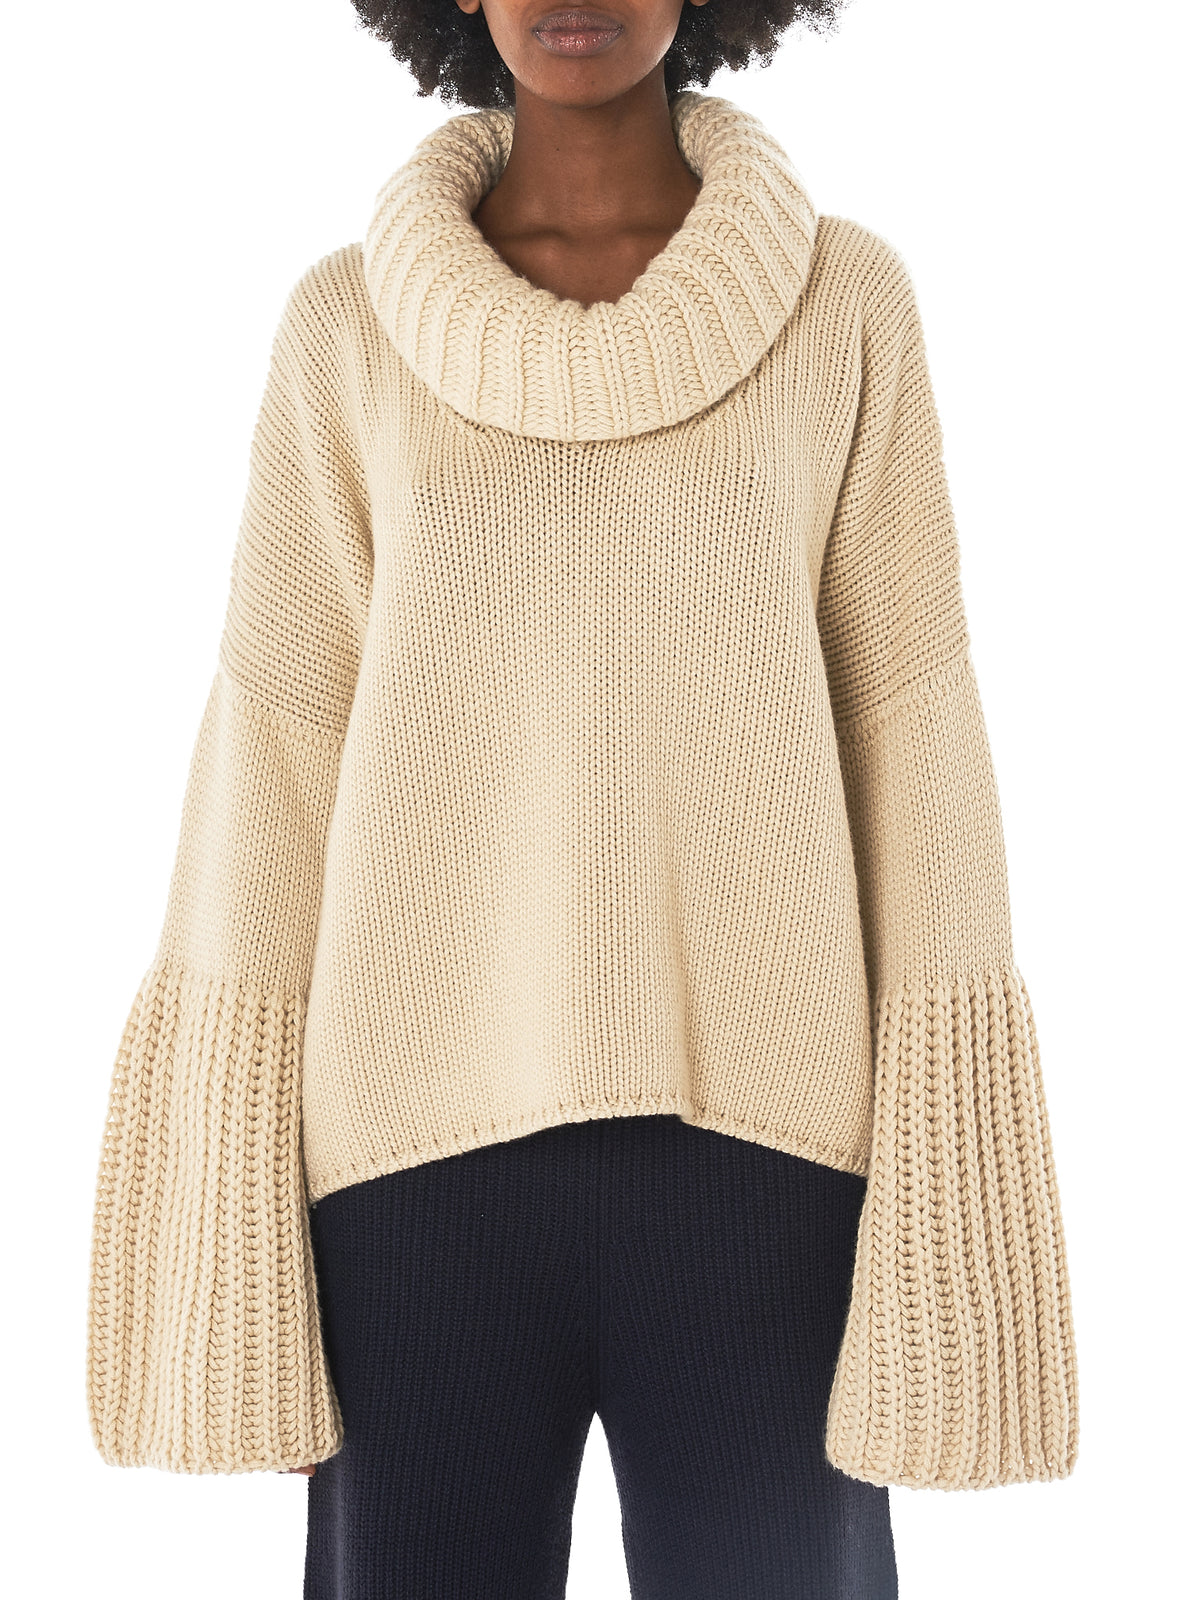 Courcheval Cashmere Turtleneck (AW3KS020-WHITE-GOLD)